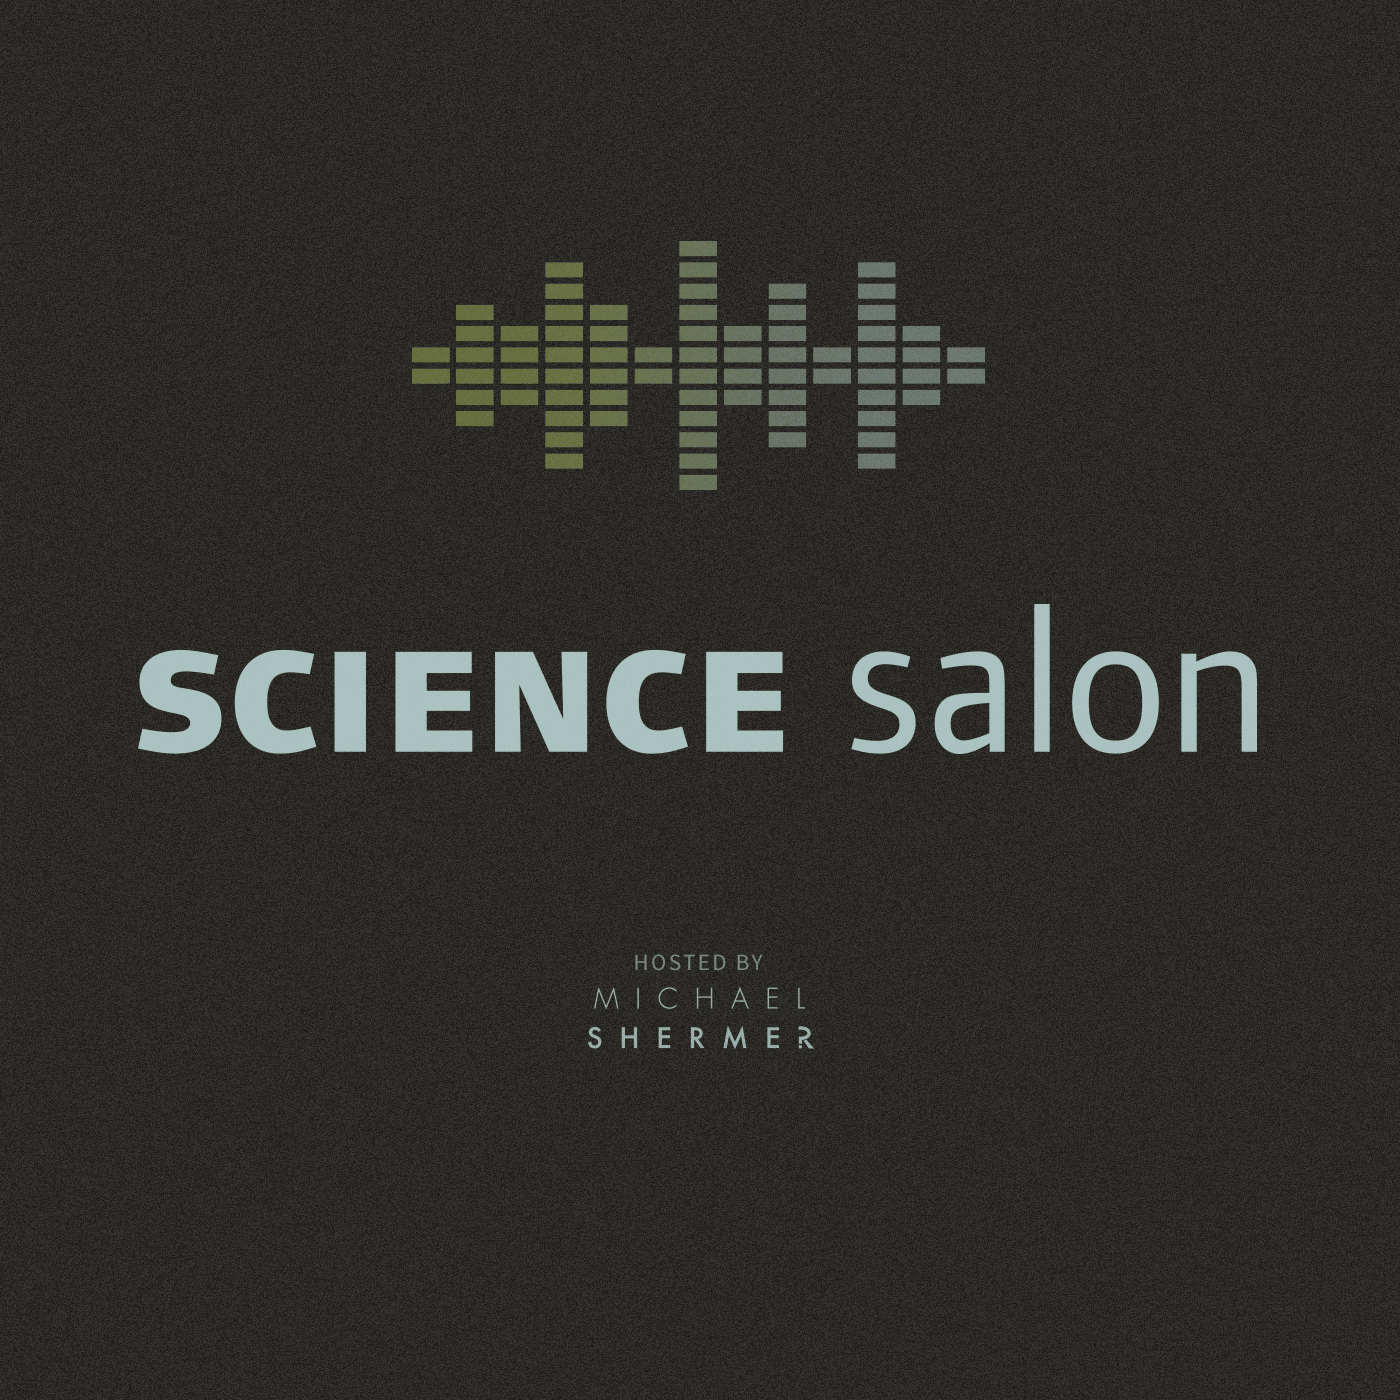 skeptic science salon audio lectures eskeptic